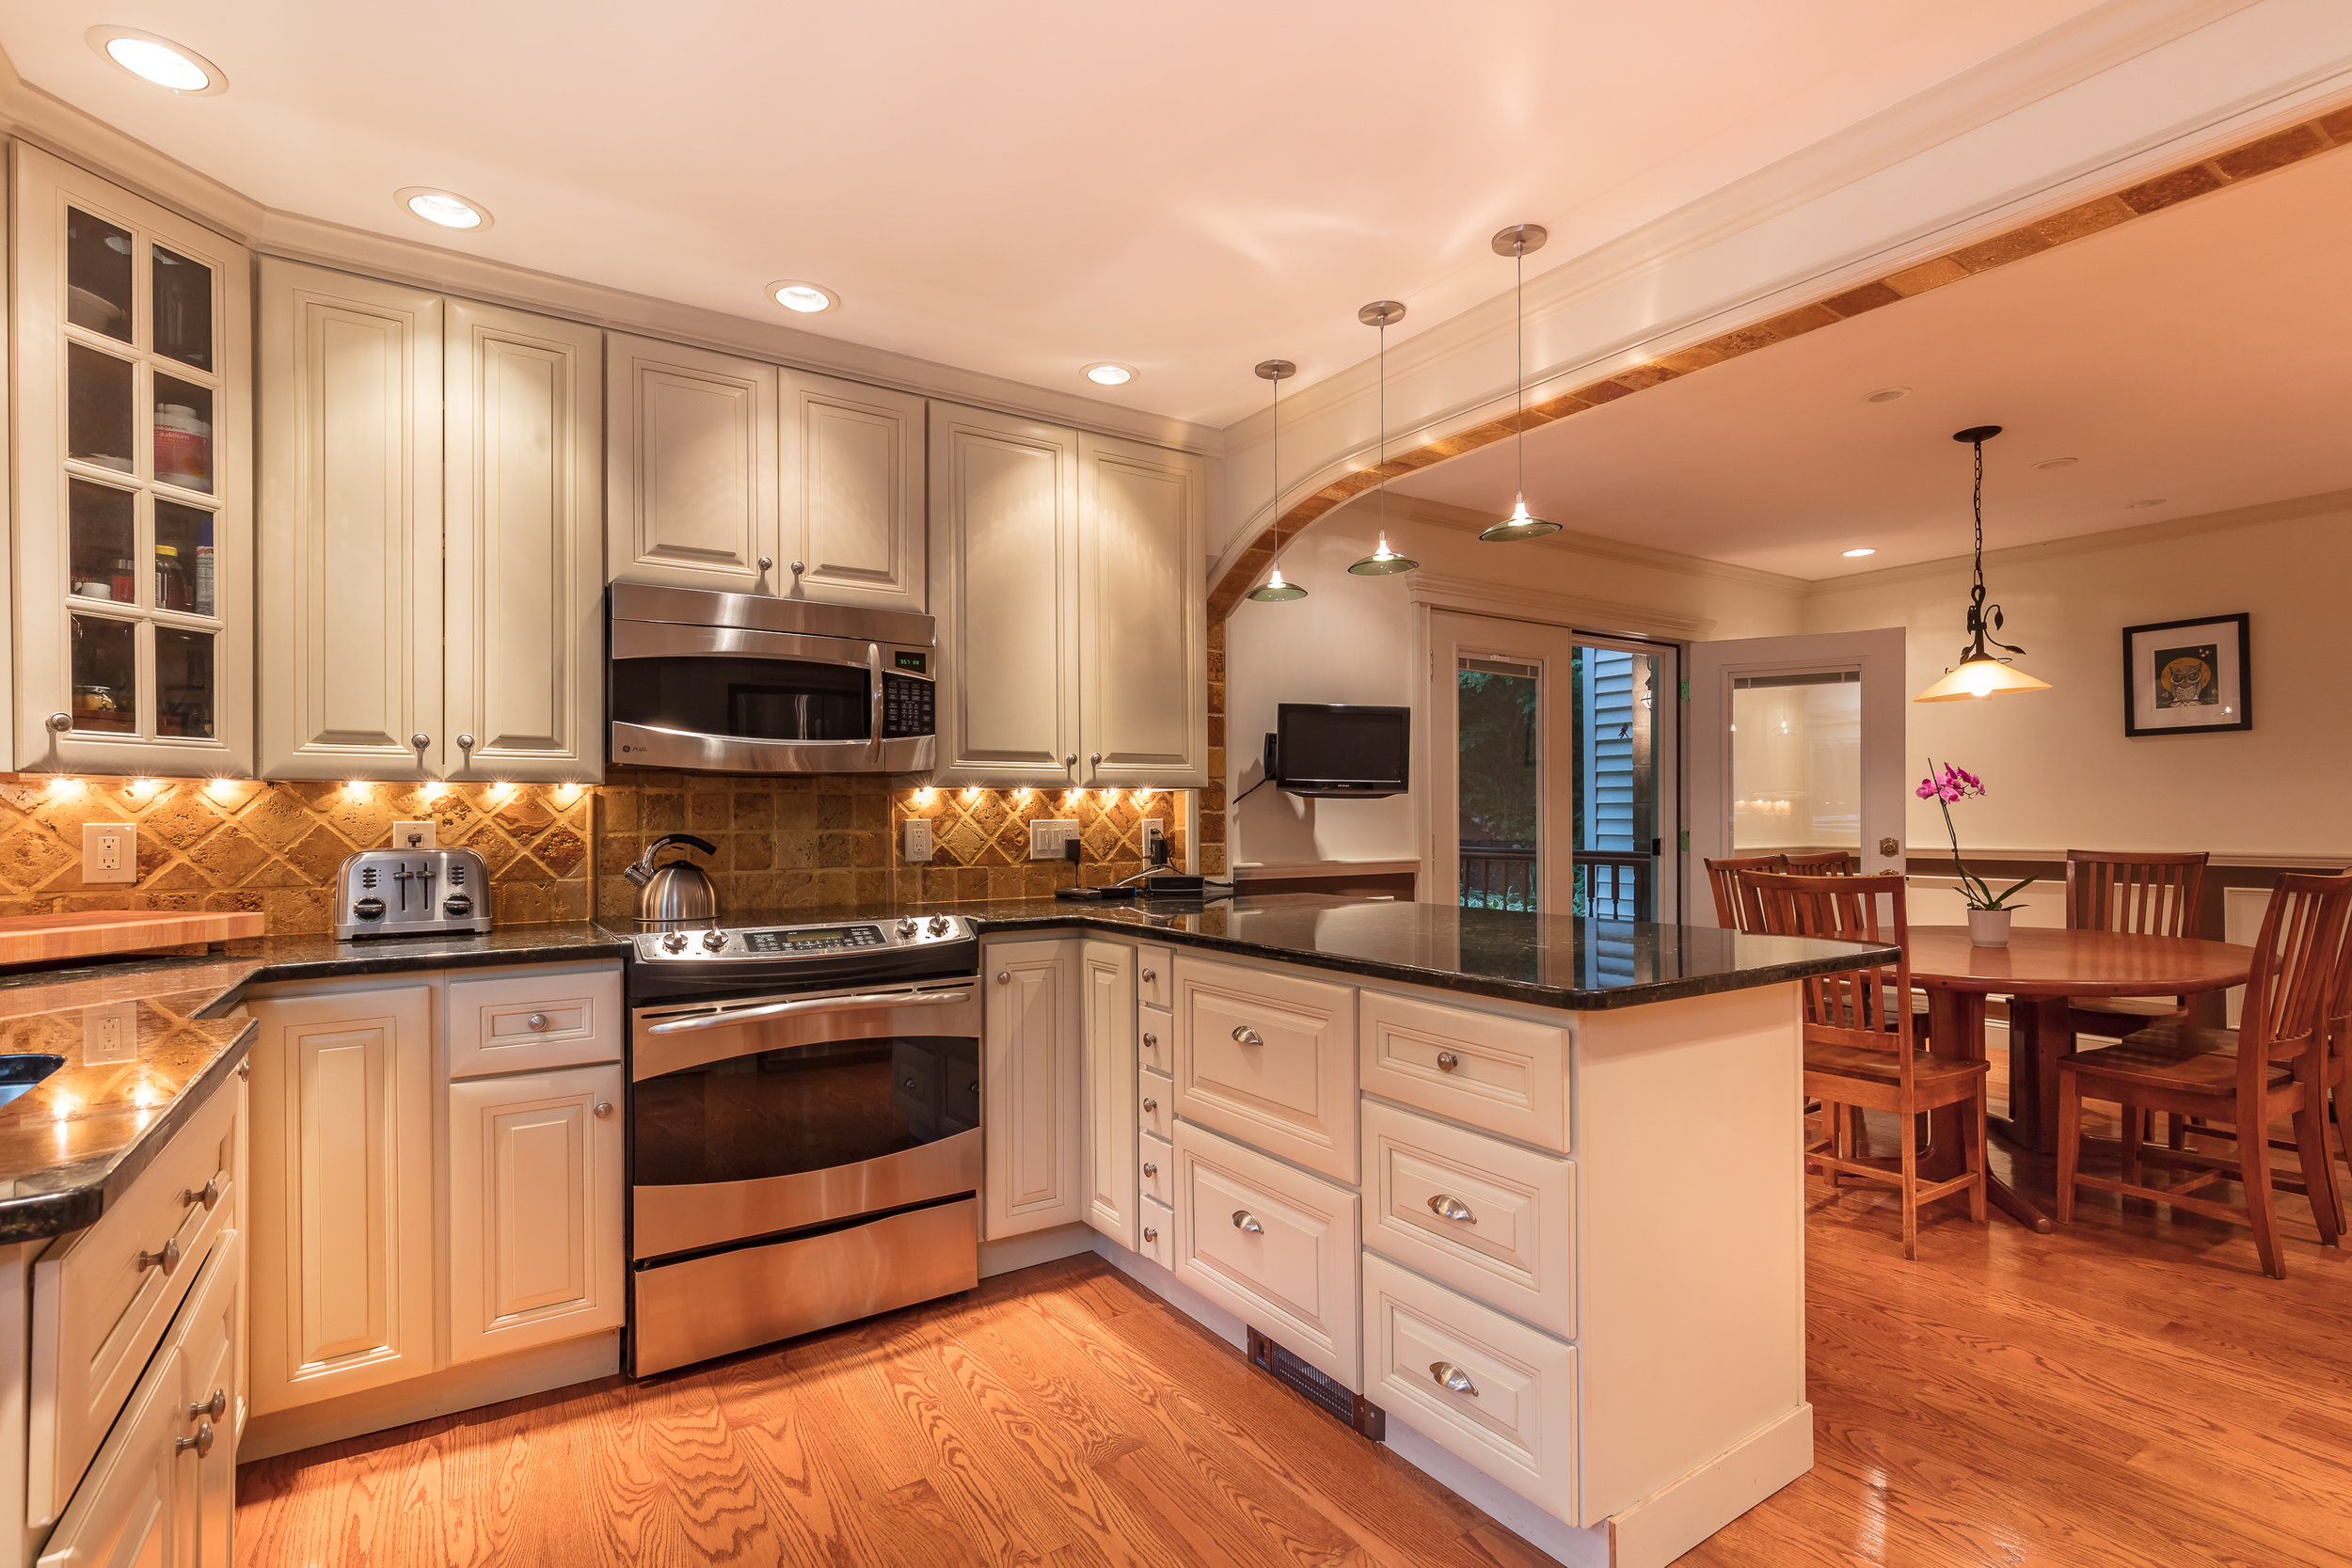 I don't normally go for darker spaces, but this kitchen's lighting design made it stand out.